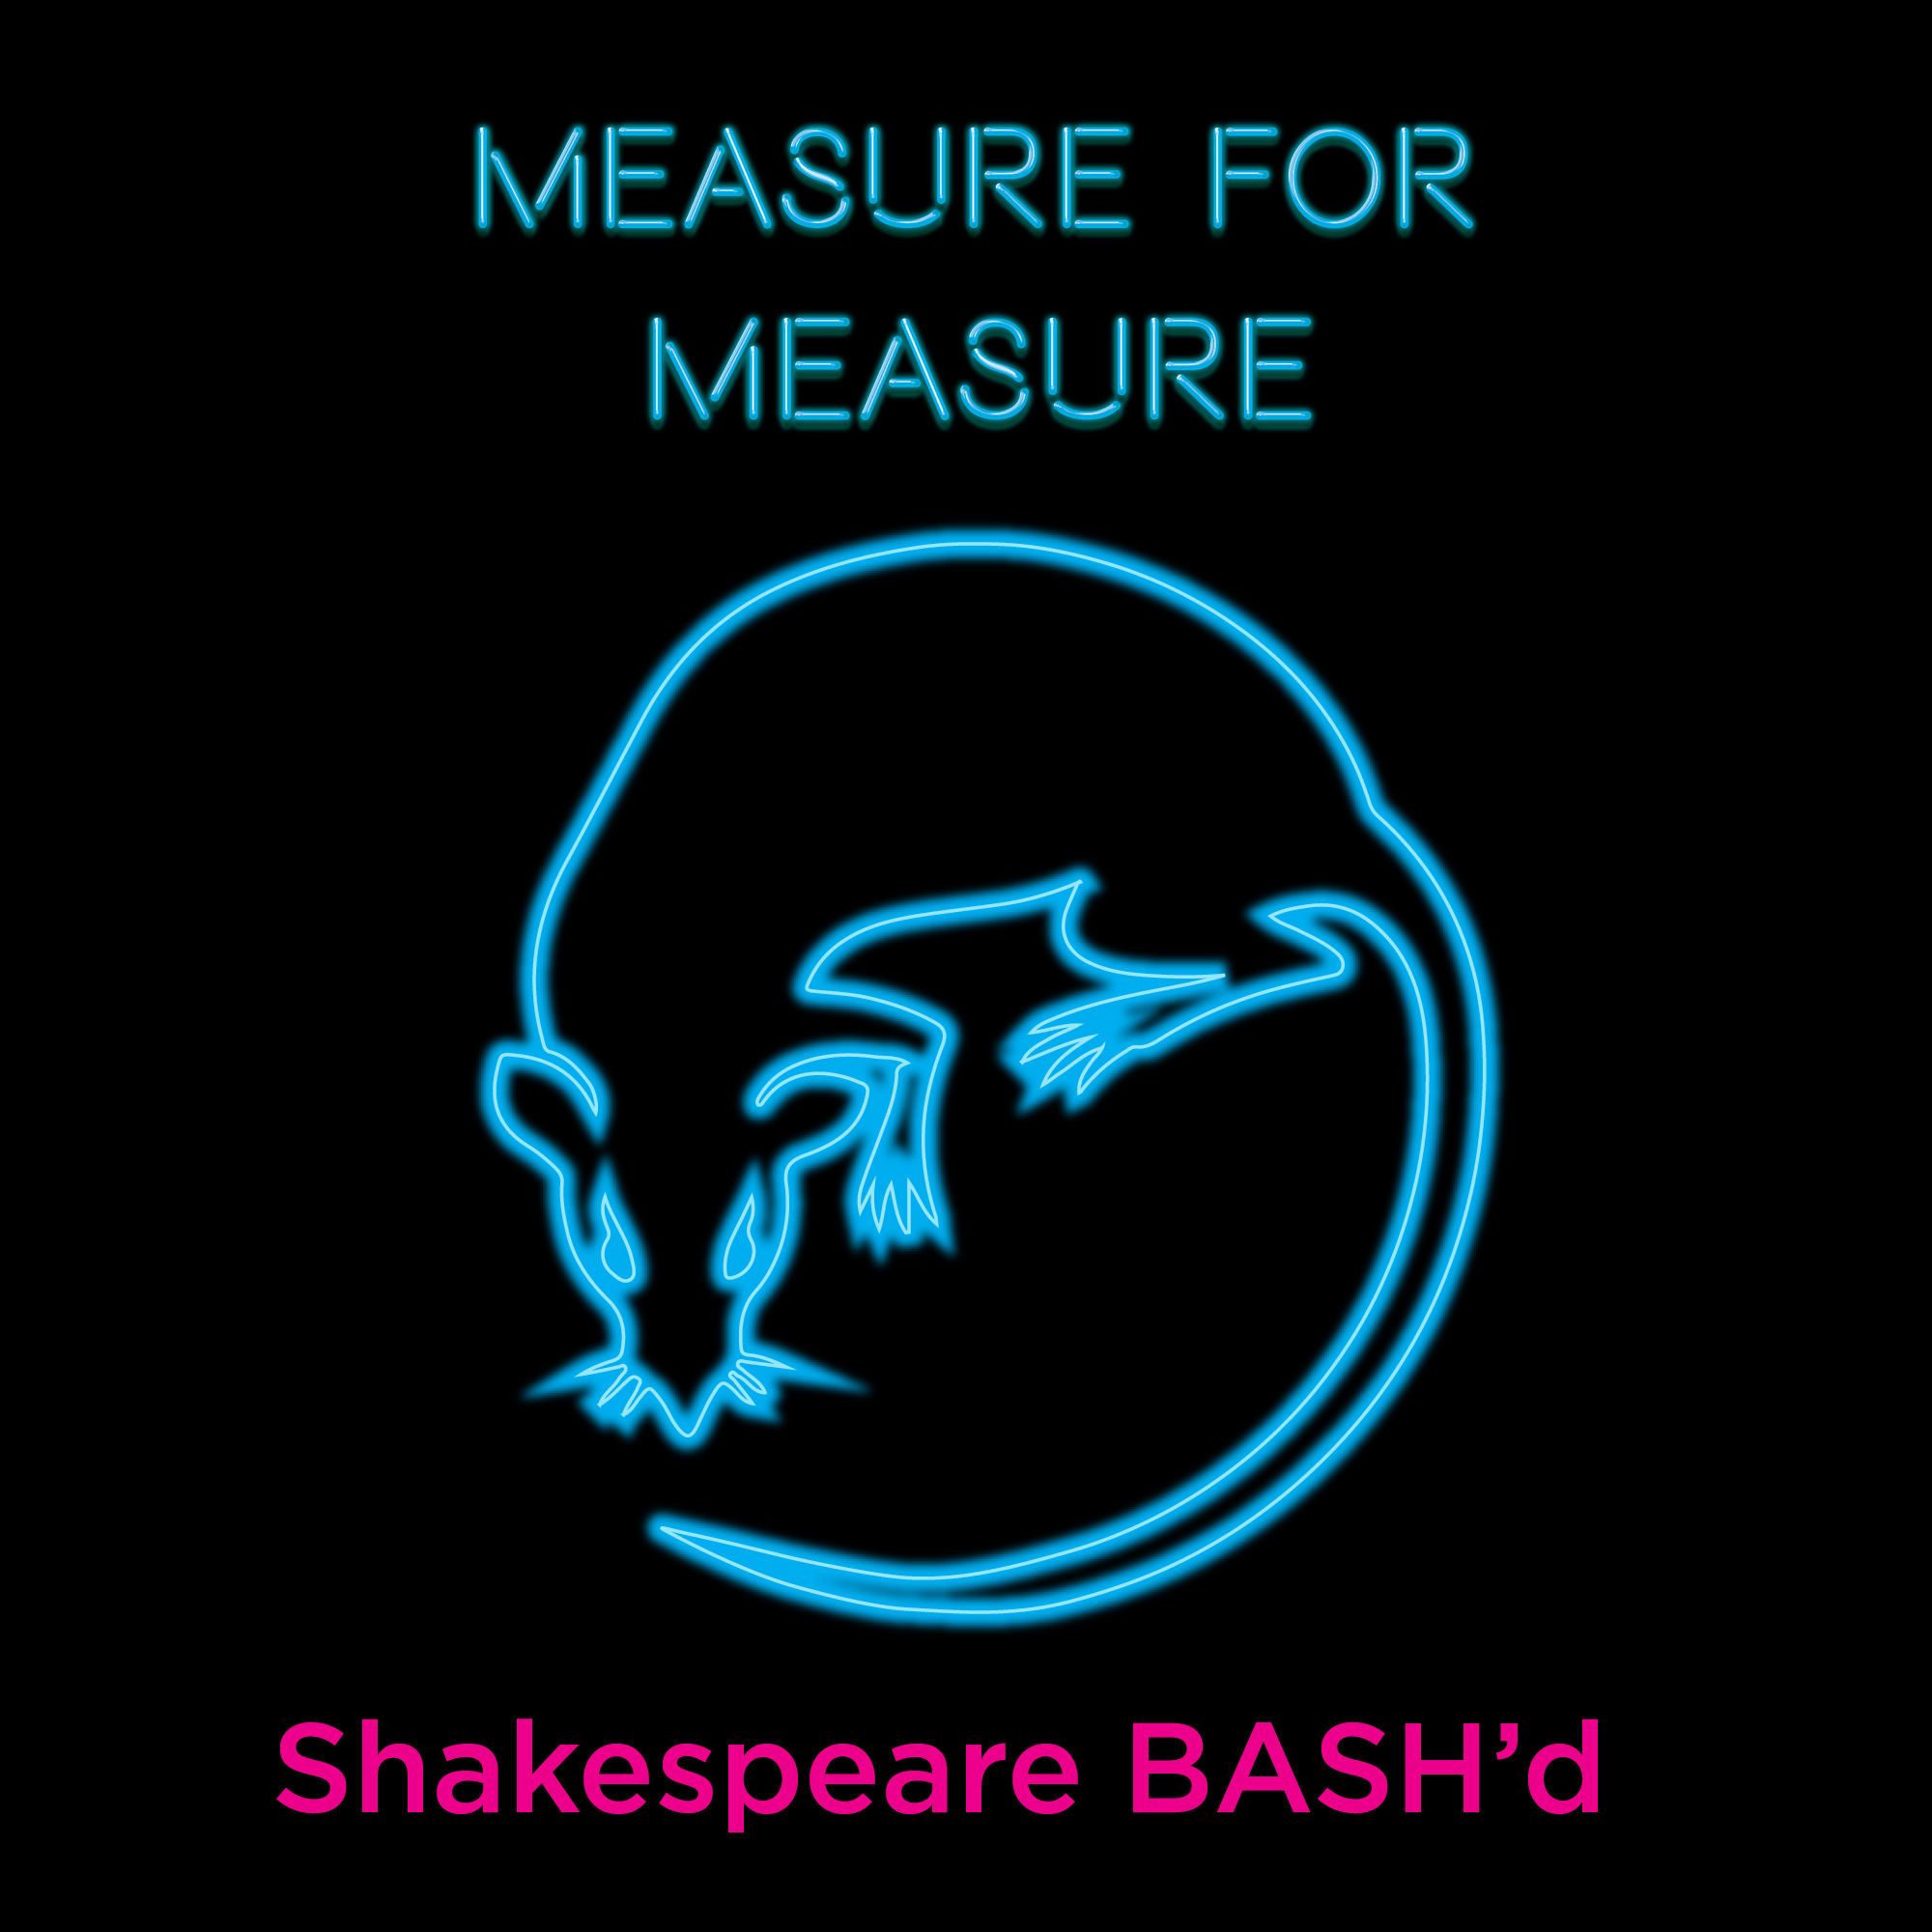 shakespeare-bashd-2017-Measure-square (1).jpg